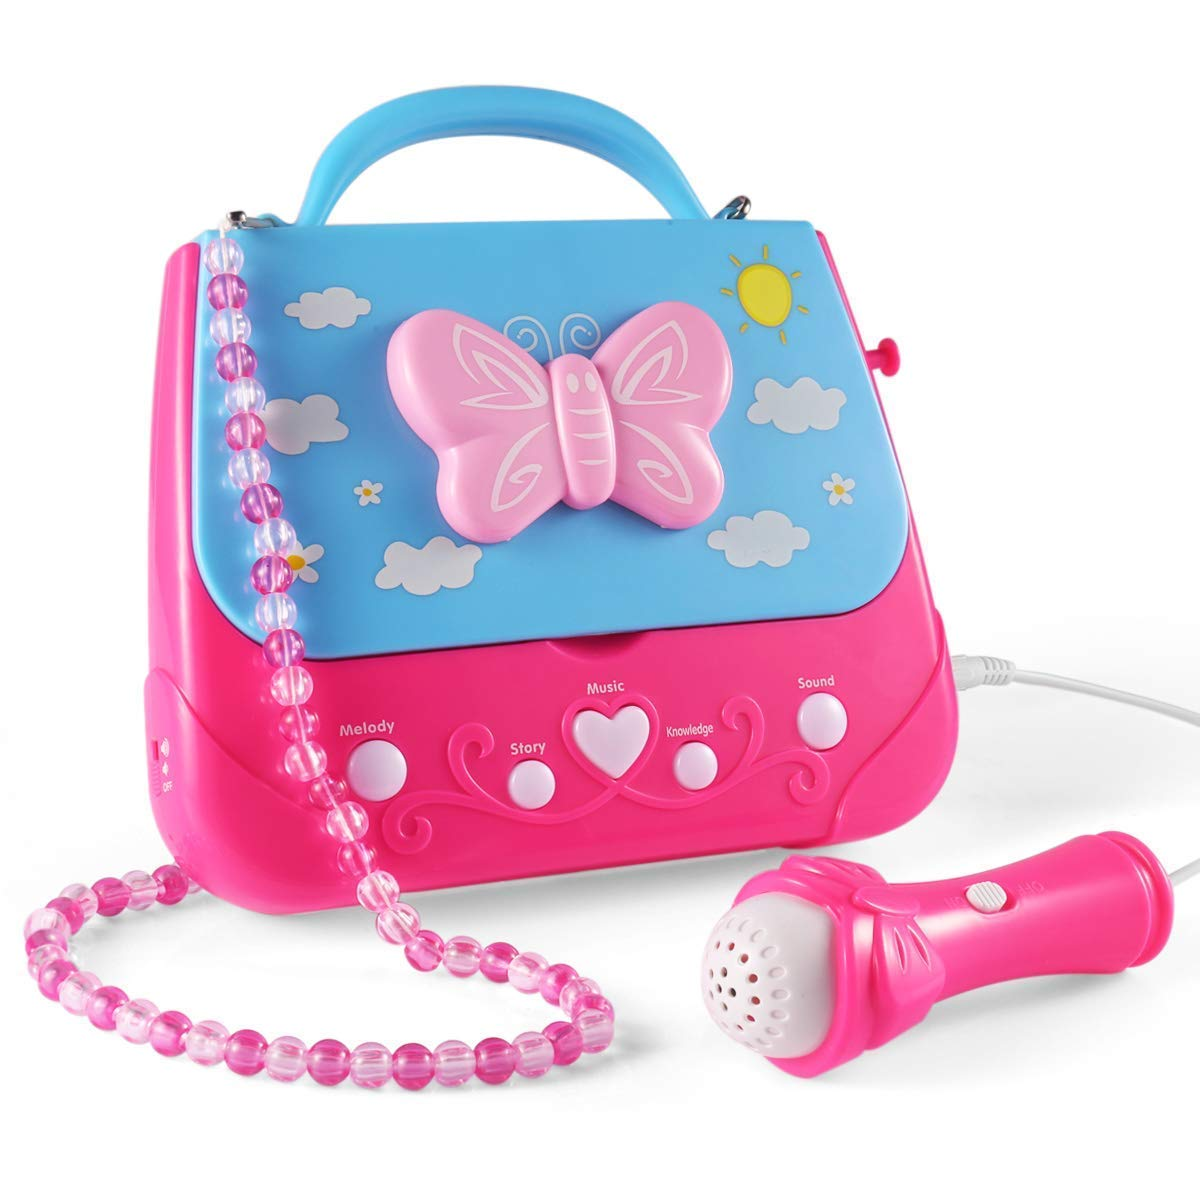 Car Guardiance Kids Karaoke Machine, Girls Karaoke Machine Toys Music Player with Microphone and Lights, Battery Operated Portable Singing Machine with Adorable Sing-Along Boom Box for Girls by Car Guardiance (Image #1)